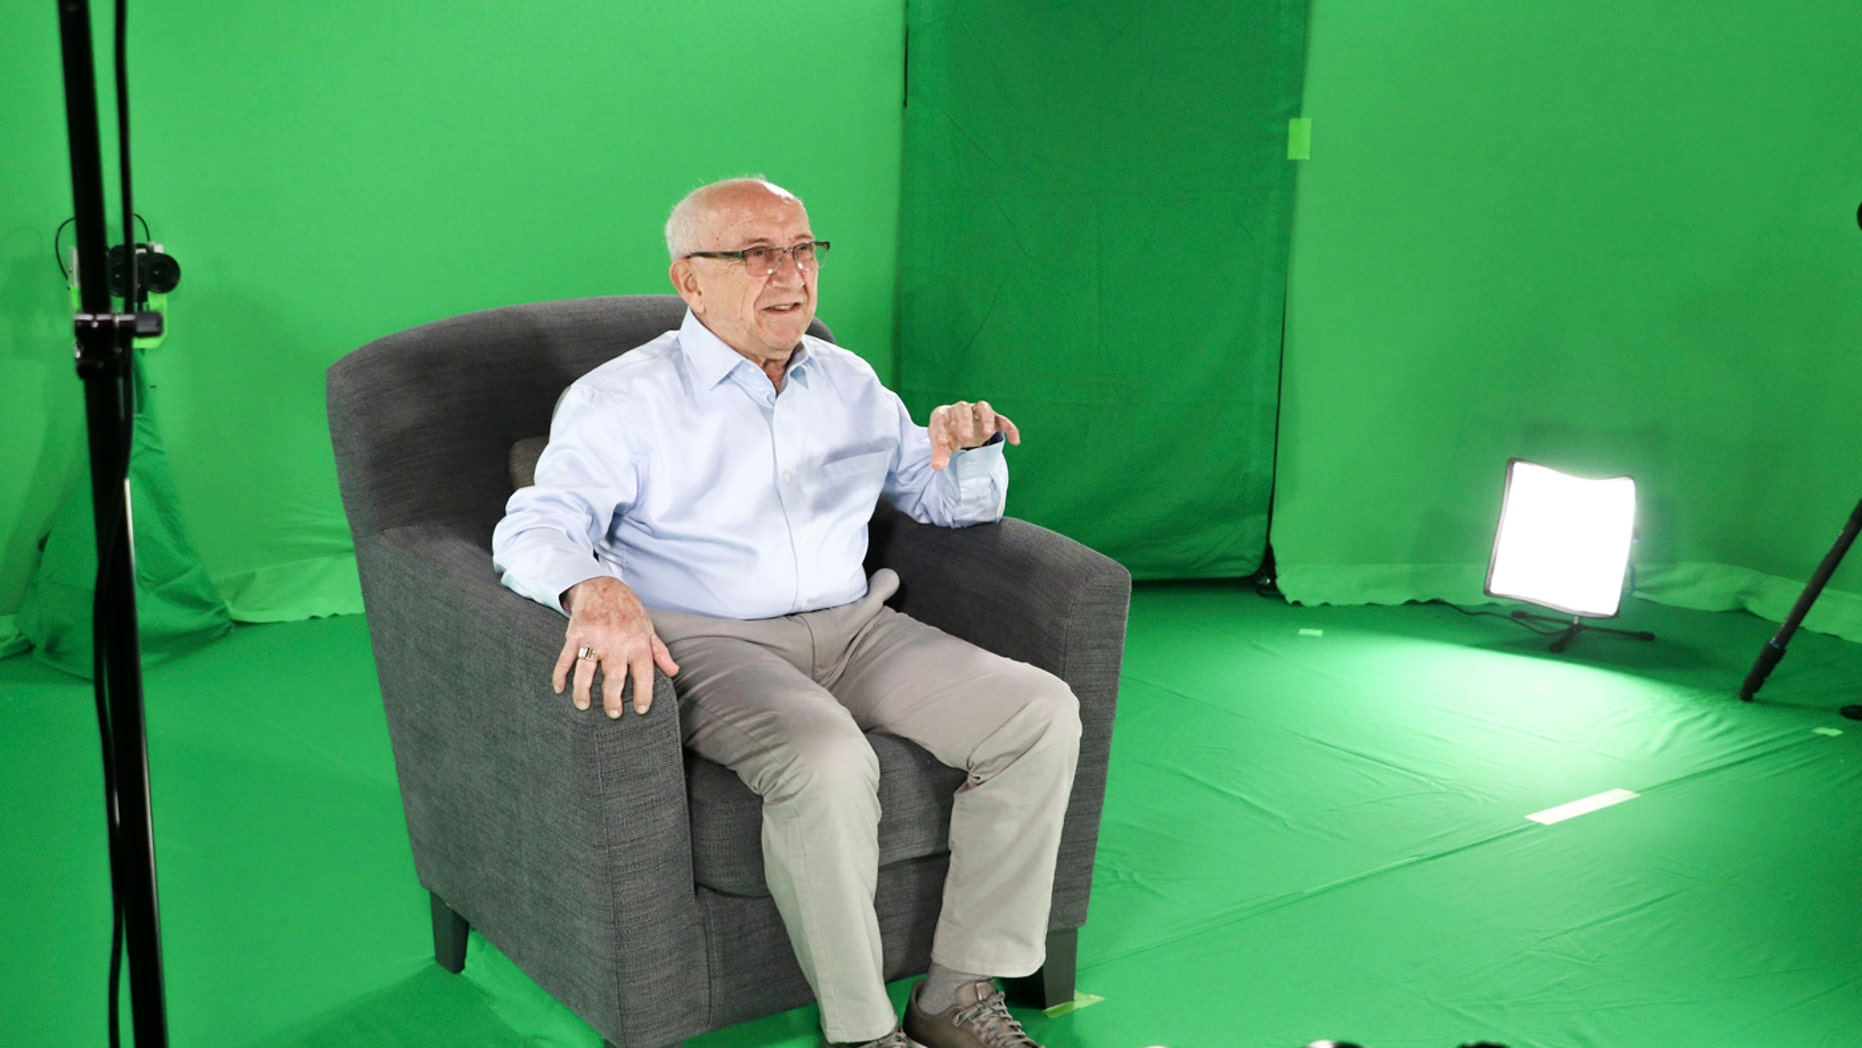 This Aug 2018 print shows Holocaust survivor Max Glauben sitting in an interactive immature shade room while filming a square for a Dallas Holocaust Museum in Dallas.